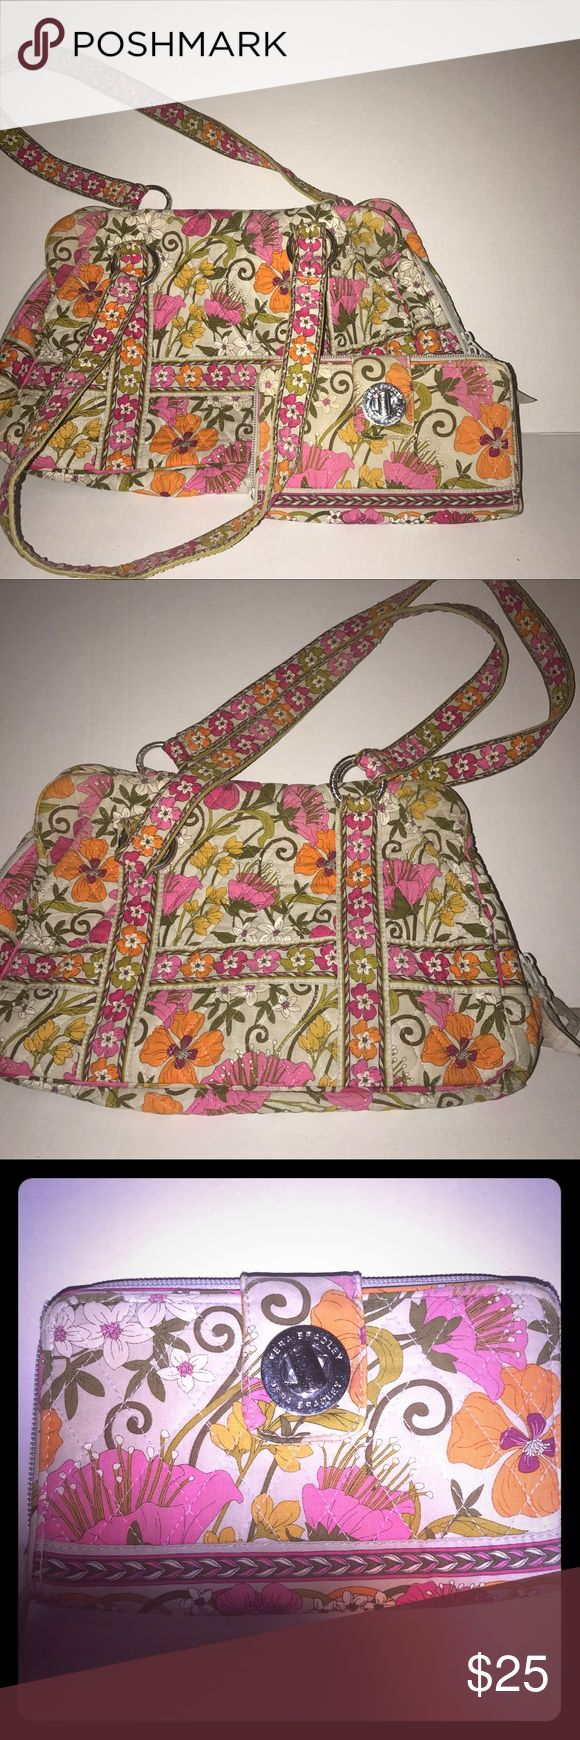 Vera Bradley Tea Garden Purse and turnlock wallet Vera Bradley Tea Garden Purse & Turnlock wallet in good used condition.  No staining, tears or flaws on either item. Features a grey background with hot pink and orange floral pattern. Vera Bradley Bags Shoulder Bags